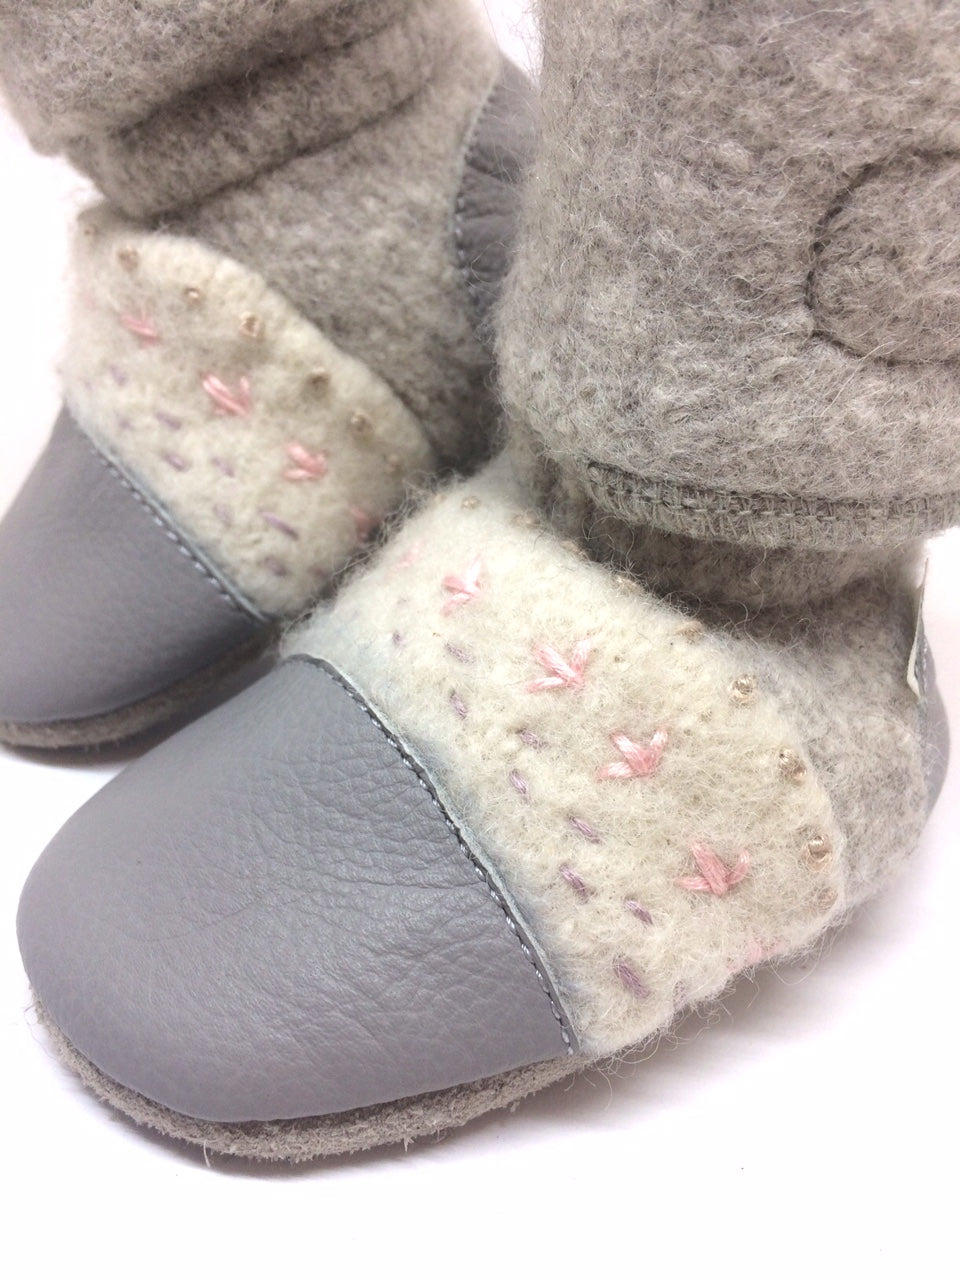 735b15c460ca2 Nooks Embroidered Booties for Baby & Toddler - Narwhal